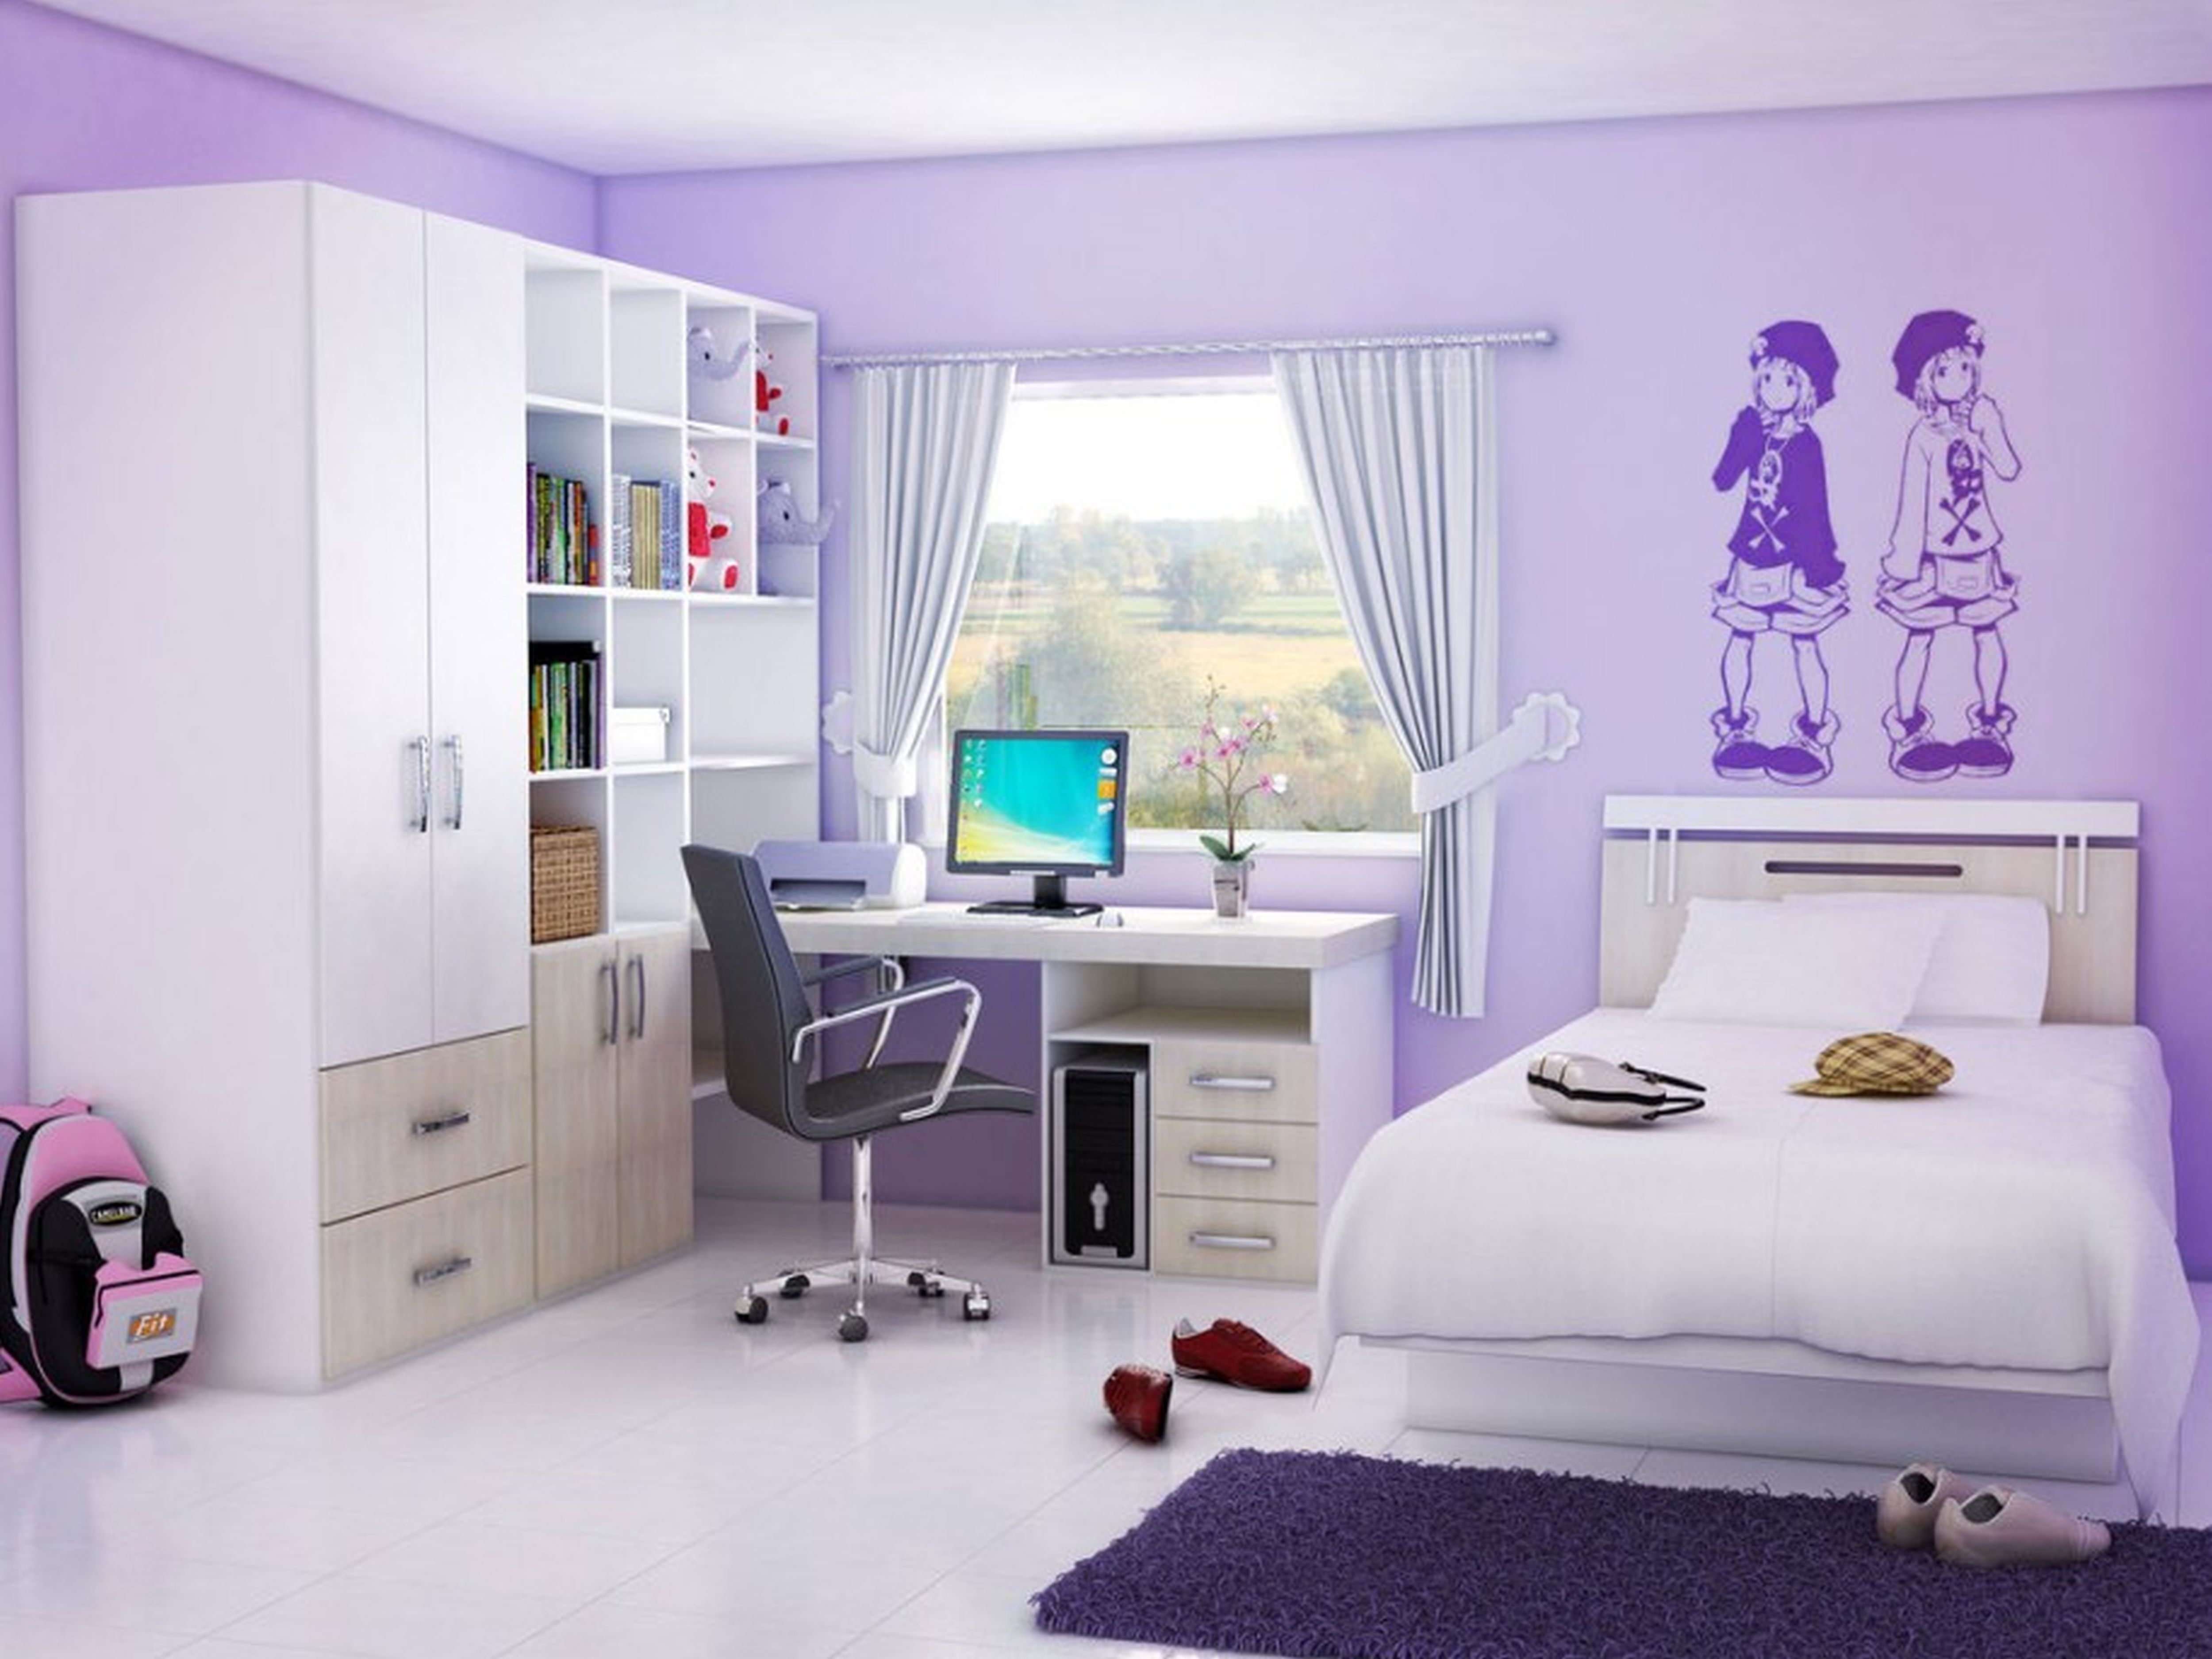 lovely tidy clean girl teenage bedroom design style featuring white ceramic floor tiles and purple and white dry wall and ceiling paint color